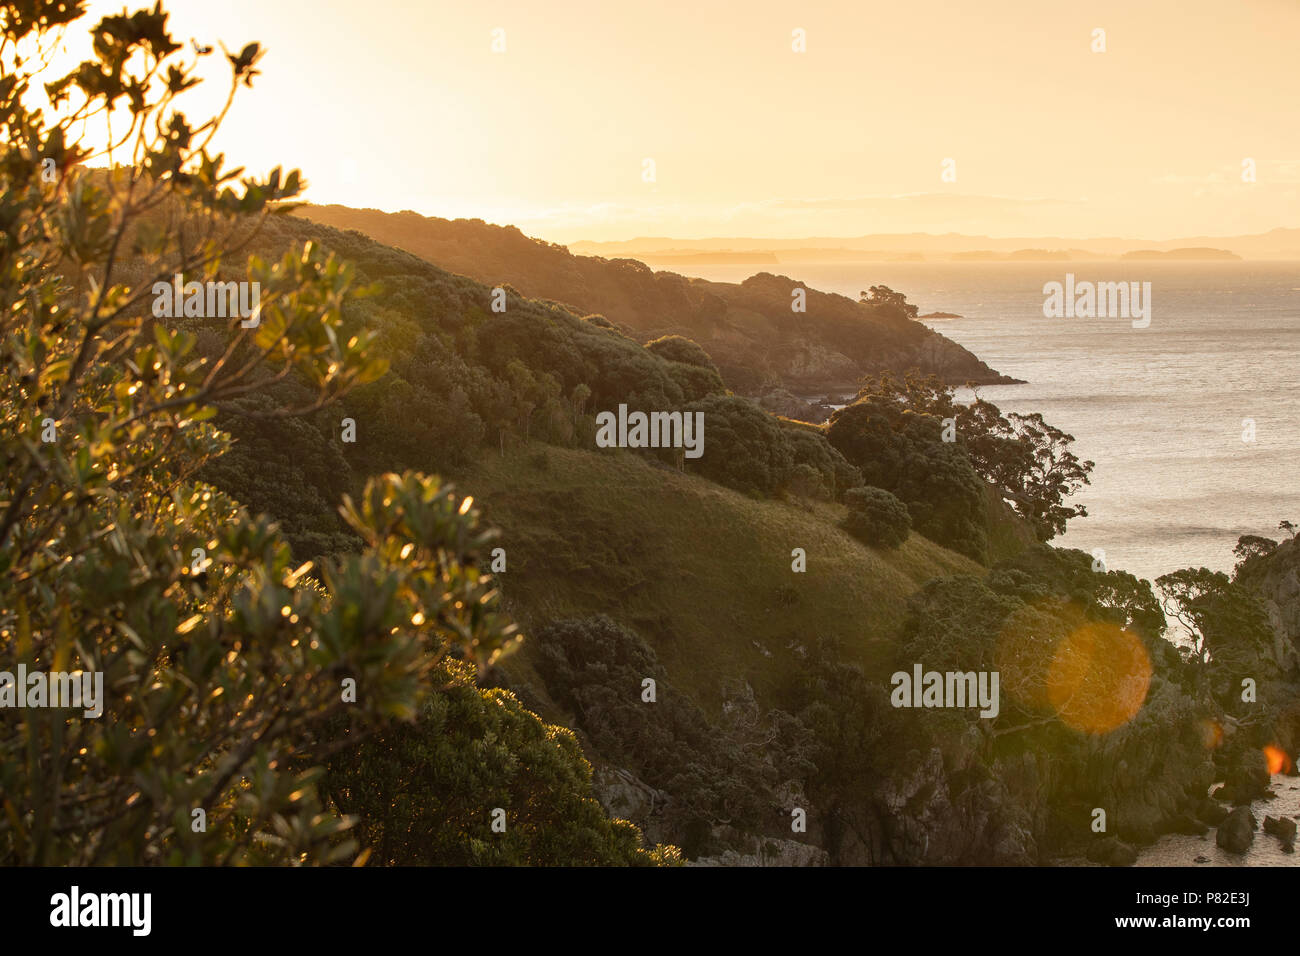 Tiritiri Matangui coastline at sunset - Stock Image